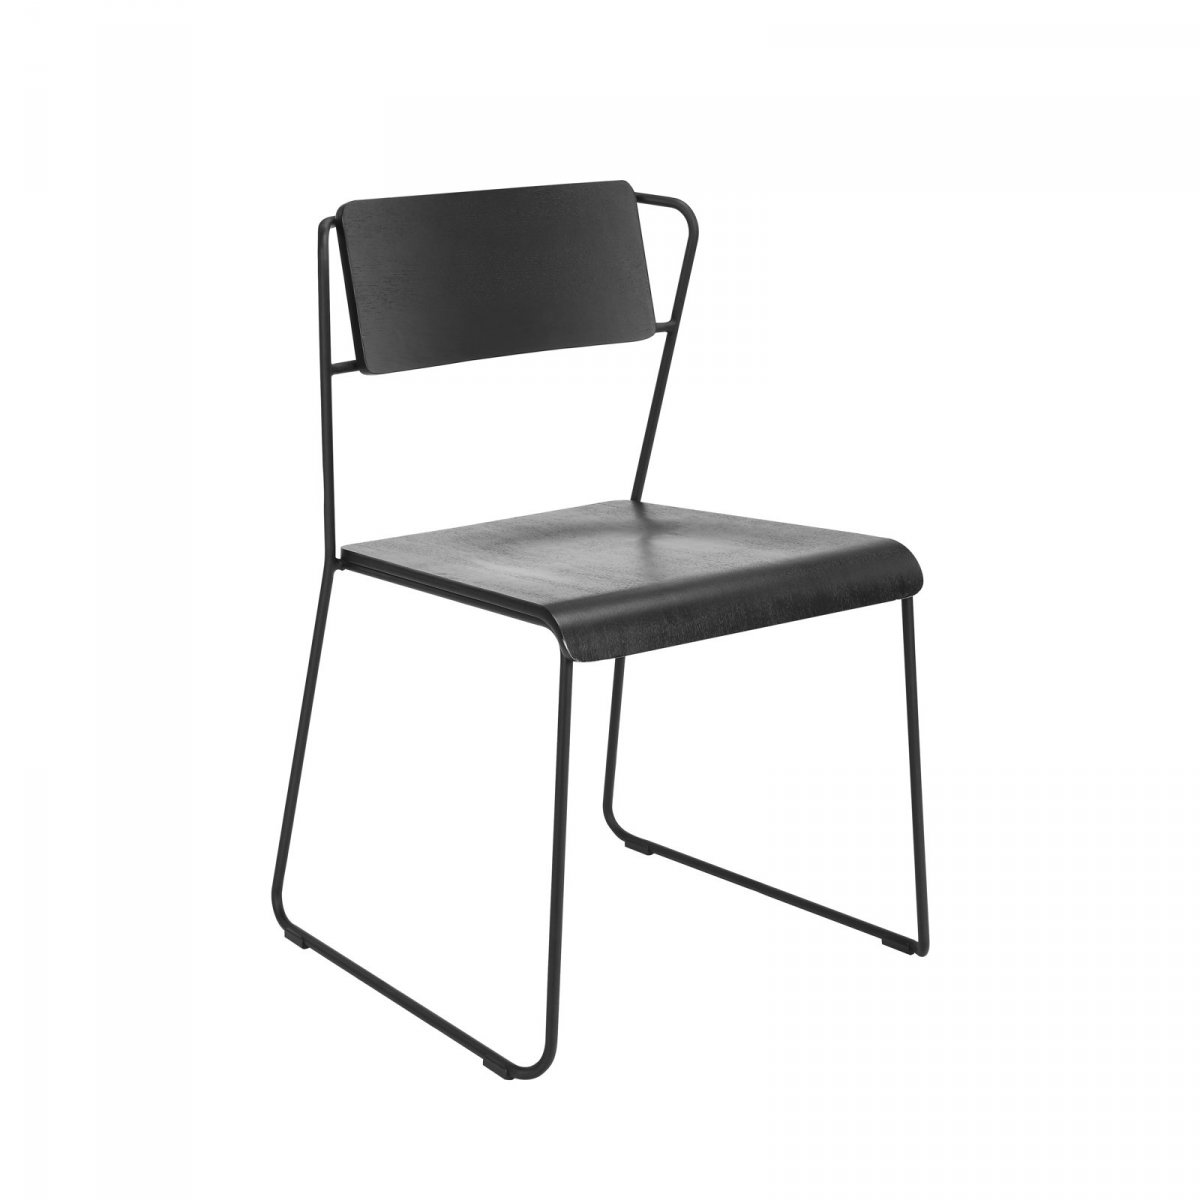 Transit G8 Stacking Chair, black.